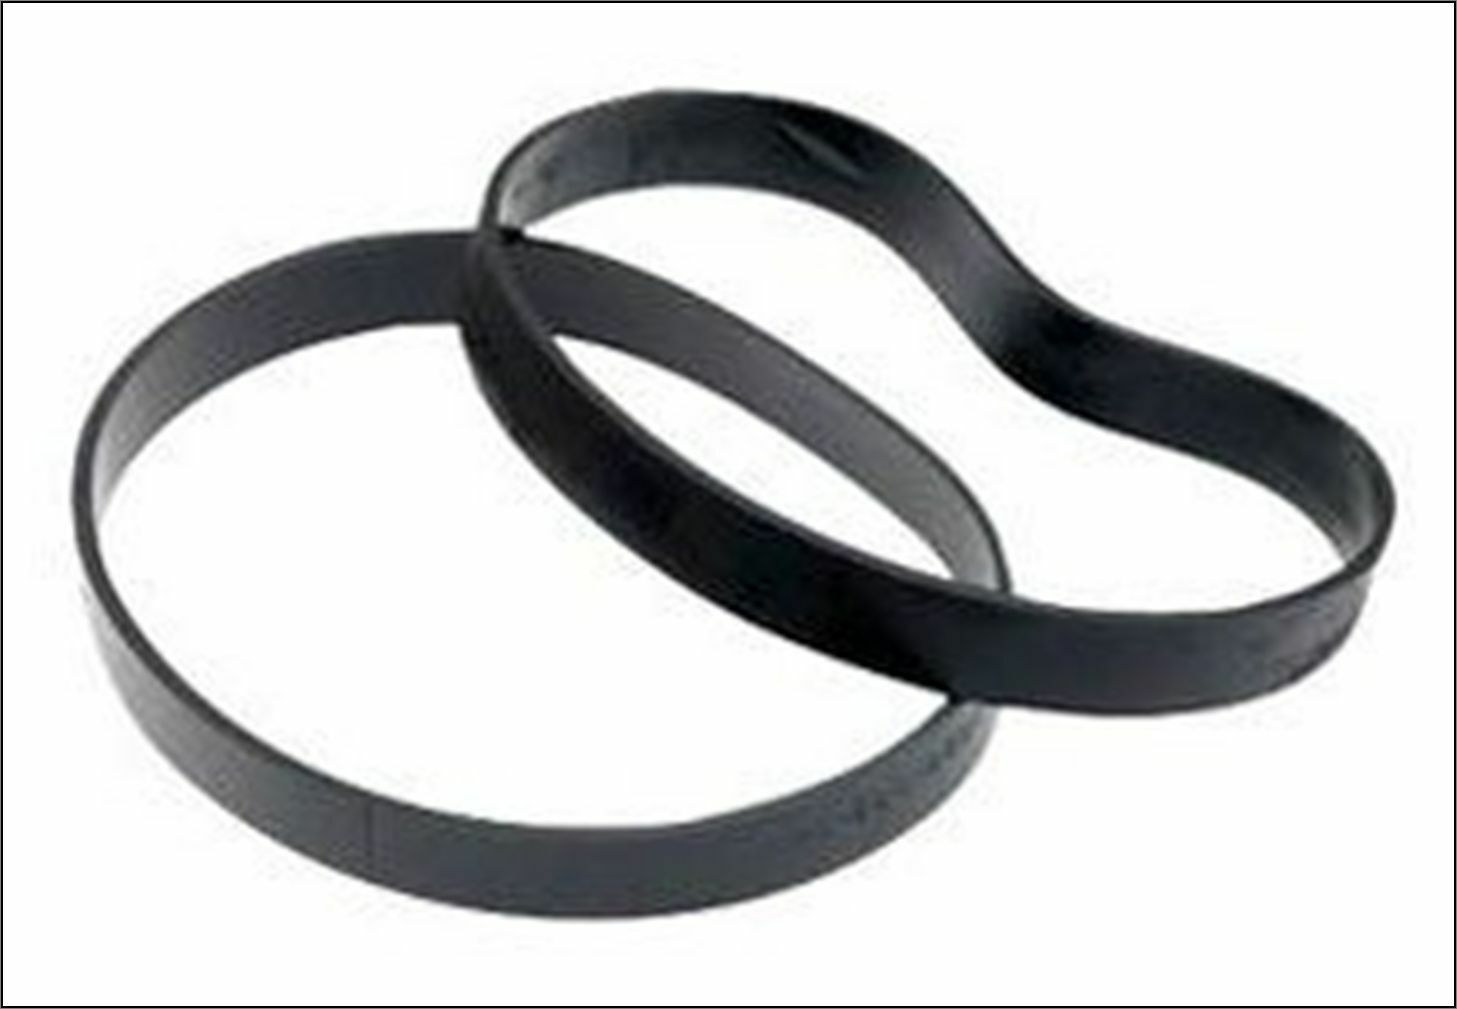 Replacement Drive Belts Vax Action 602 U86-AN-BE U86ANBE Vacuum Hoover Belt